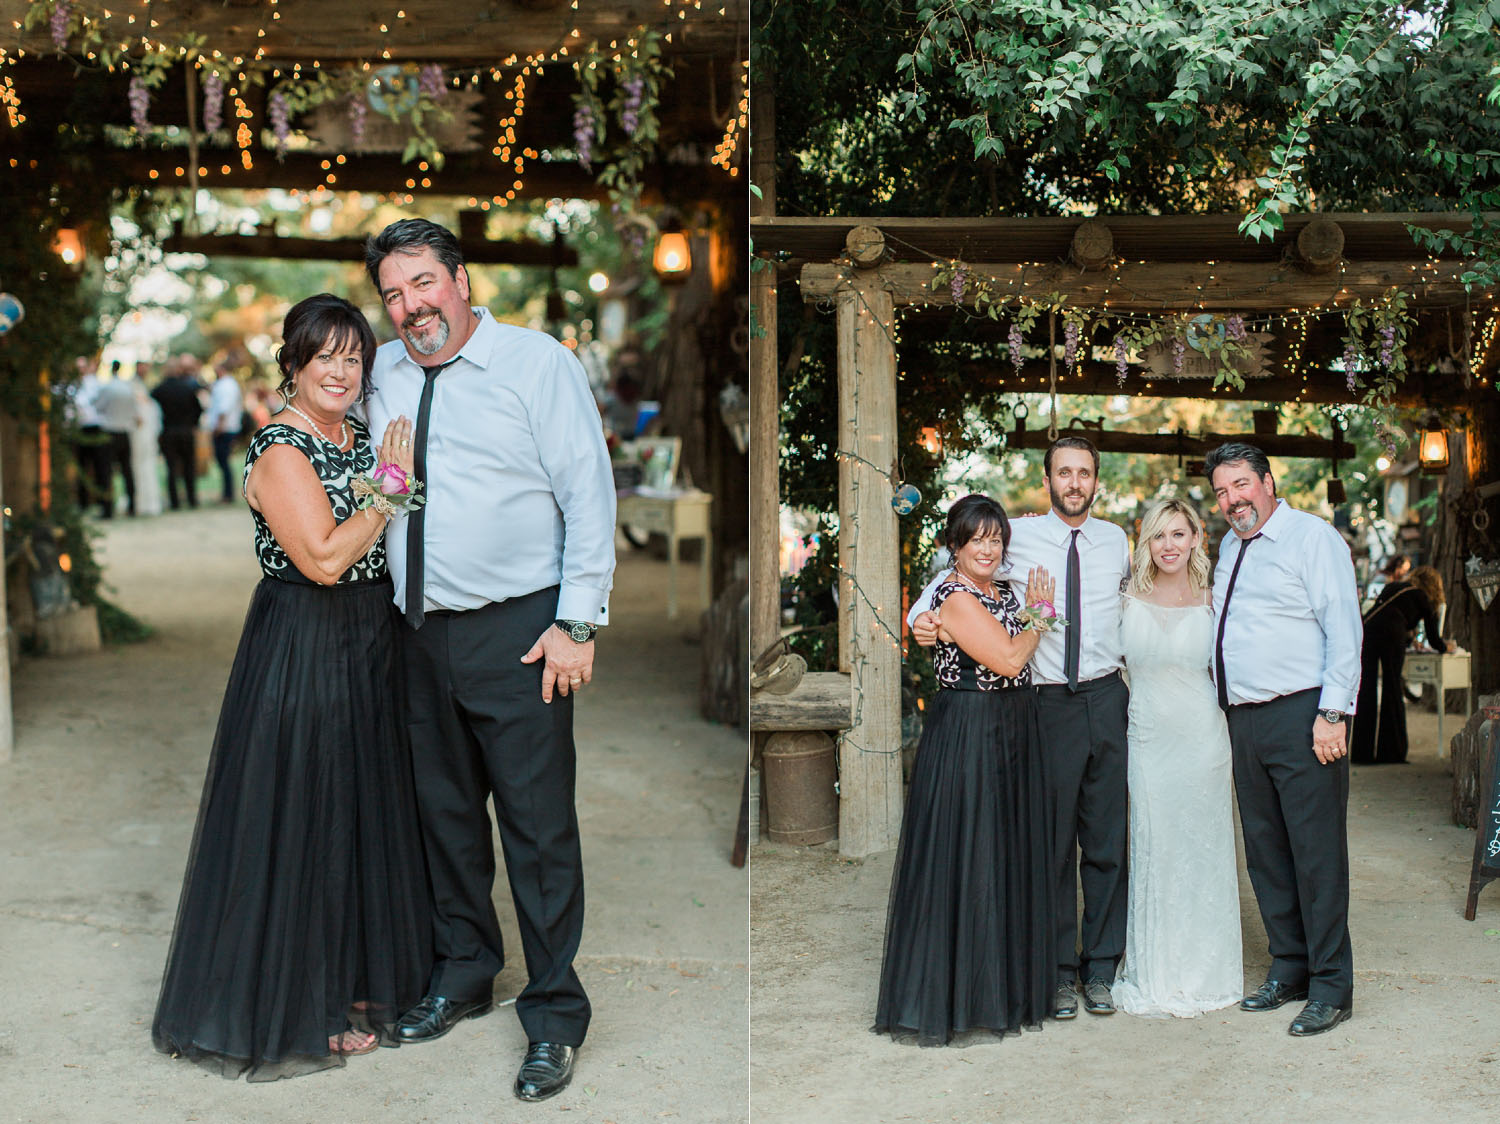 The Photege - Elegant Boho Wedding on Suburu Farm in Bakersfield California- Cassie and Darin Buoni-3052